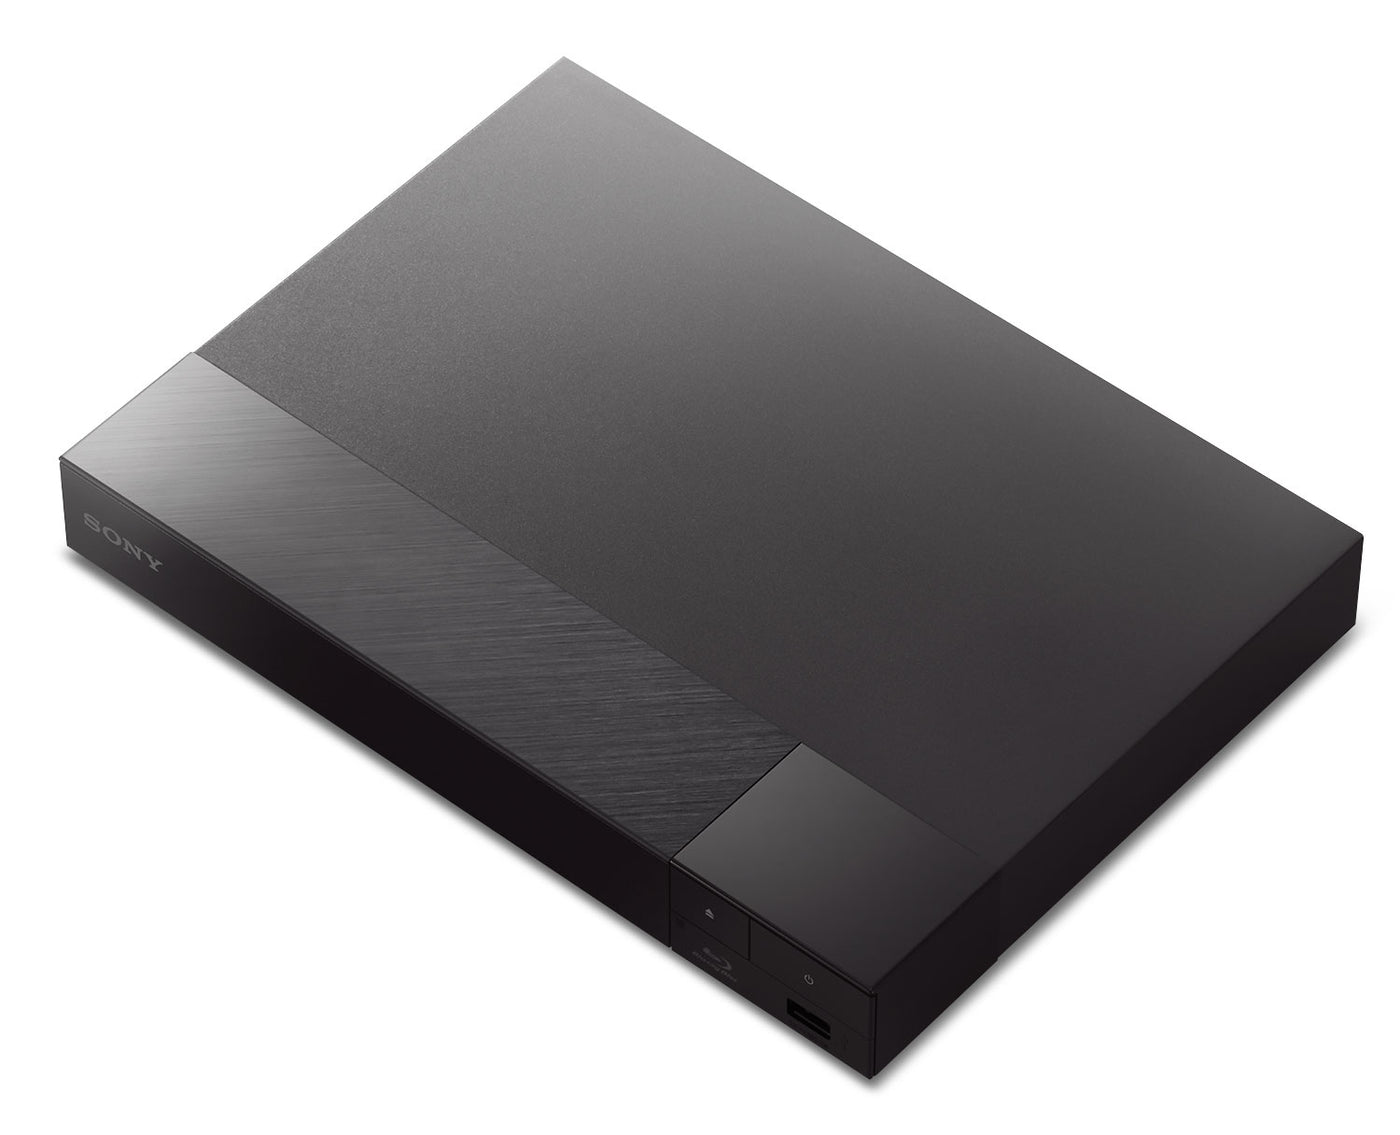 Sony BDP-S6700 Blu-ray Player with 4K Upscaling